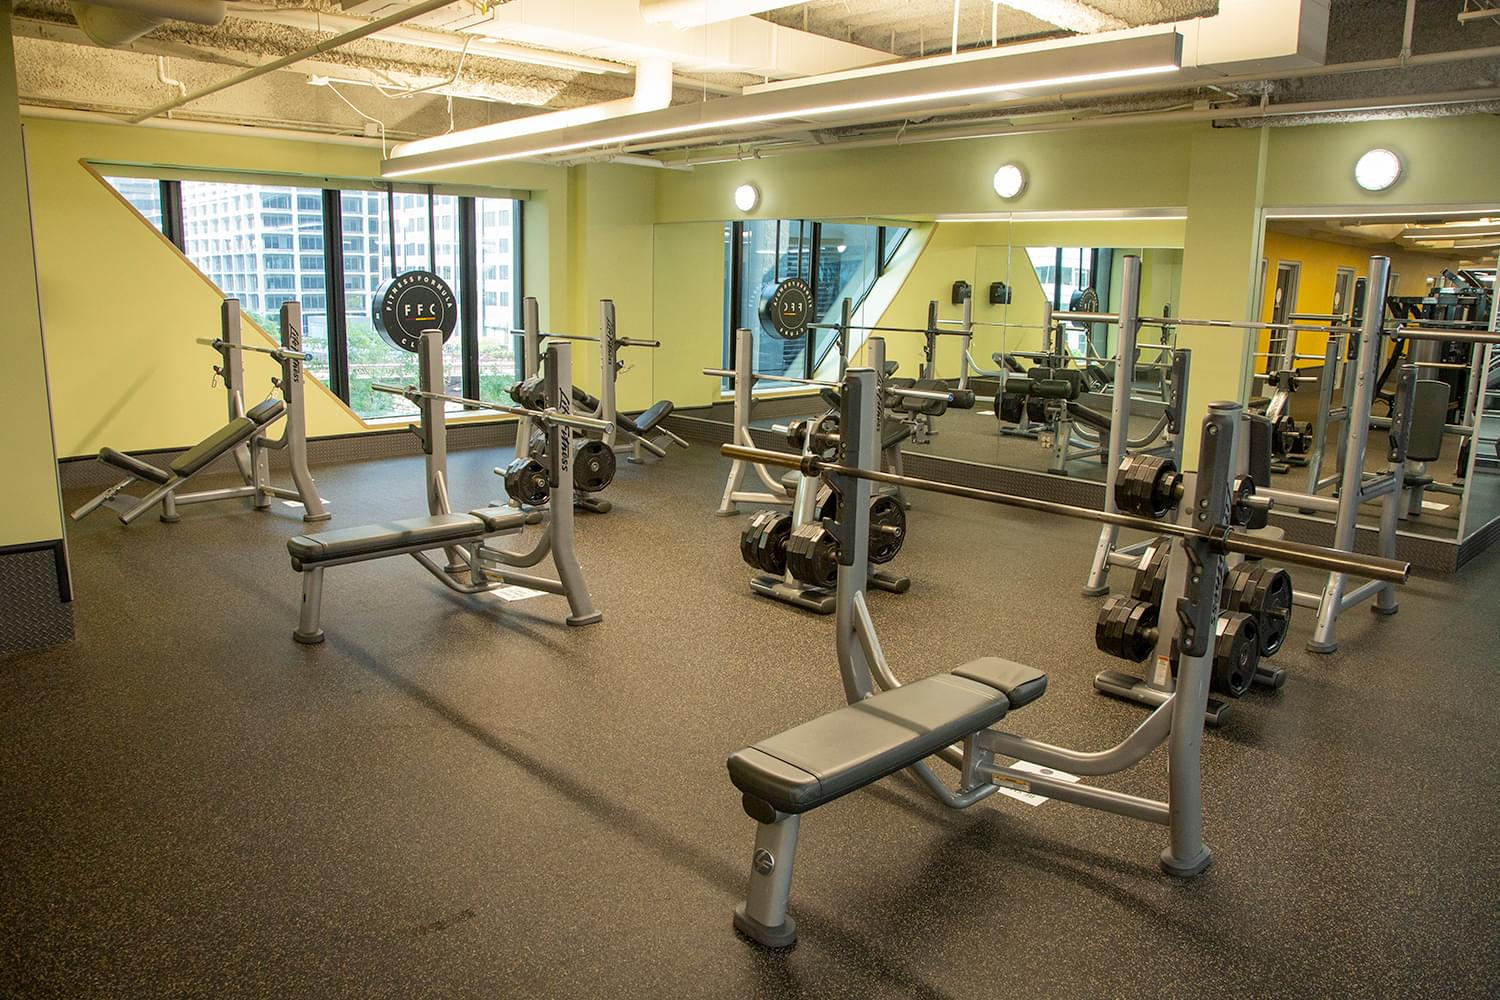 FFC Union Station Fitness Floor Machines